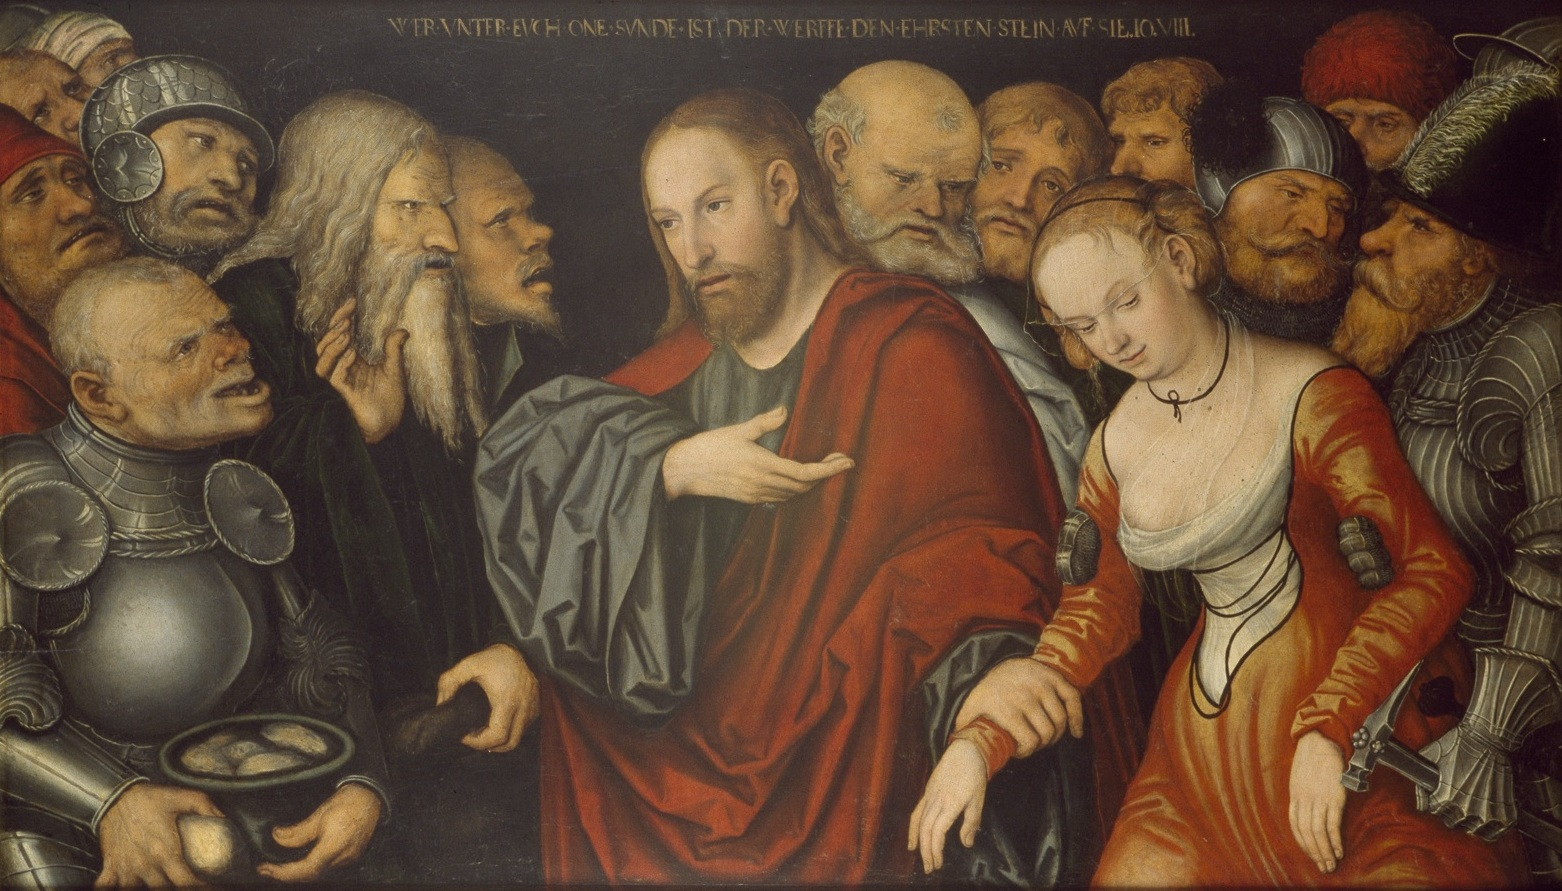 Christ and the Woman Taken in Adultery, Lucas Cranach the Younger, c. 1530